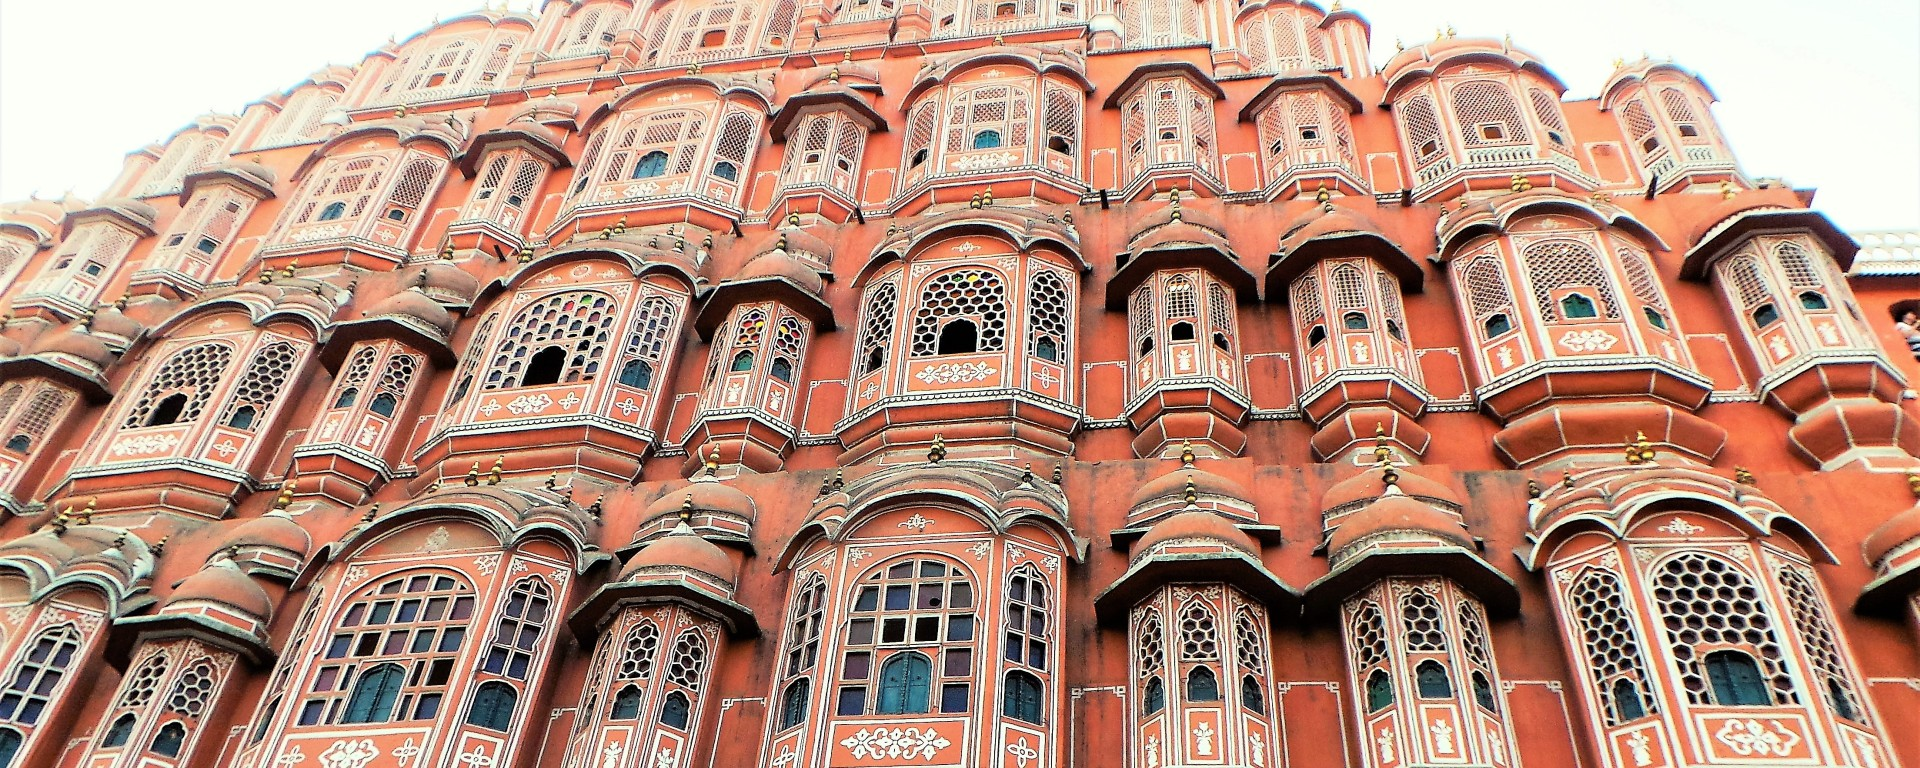 Lovely Architecture in The Pink City, Rajastan